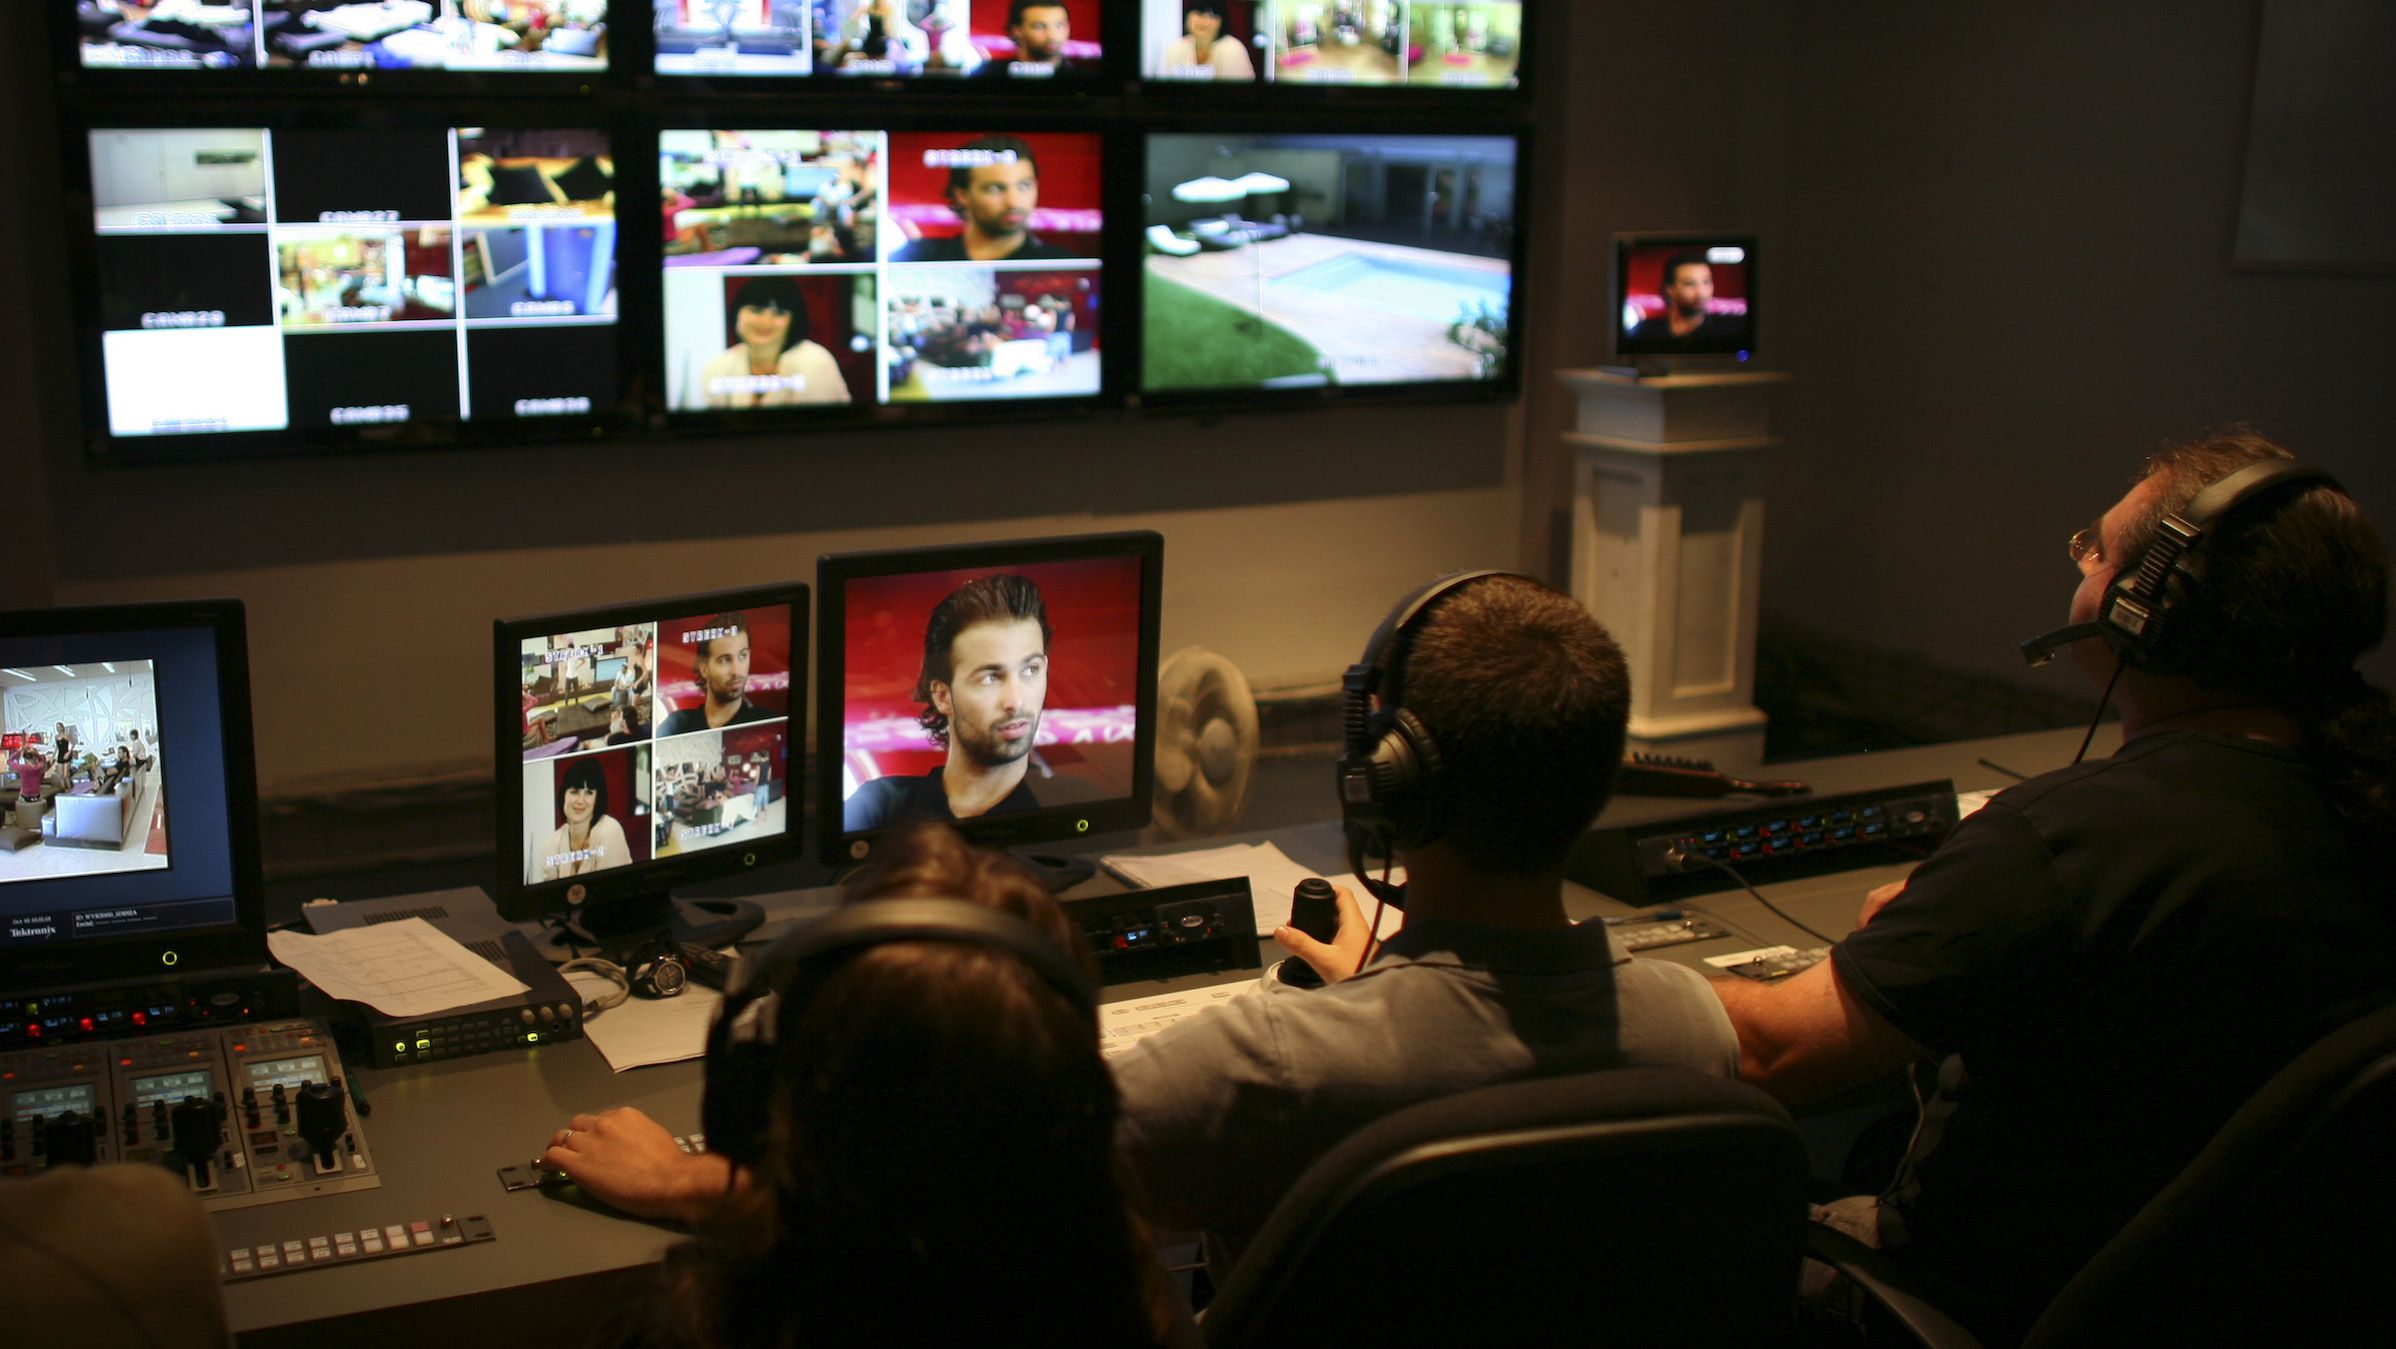 Israeli television editors and engineers work in the control room of the Israeli version of the reality television show Big Brother, in Neve Ilan, near Jerusalem, Sunday, Oct. 5, 2008. In Israel, even Big Brother has to take a break on the most solemn day of the Jewish calendar. When Israel marks Yom Kippur this week, the country will come to a complete standstill. For the makers of cult reality show Big Brother, this means turning off the cameras on the round-the-clock program and building a makeshift synagogue for a religious contestant. (AP Photo/Dan Balilty)